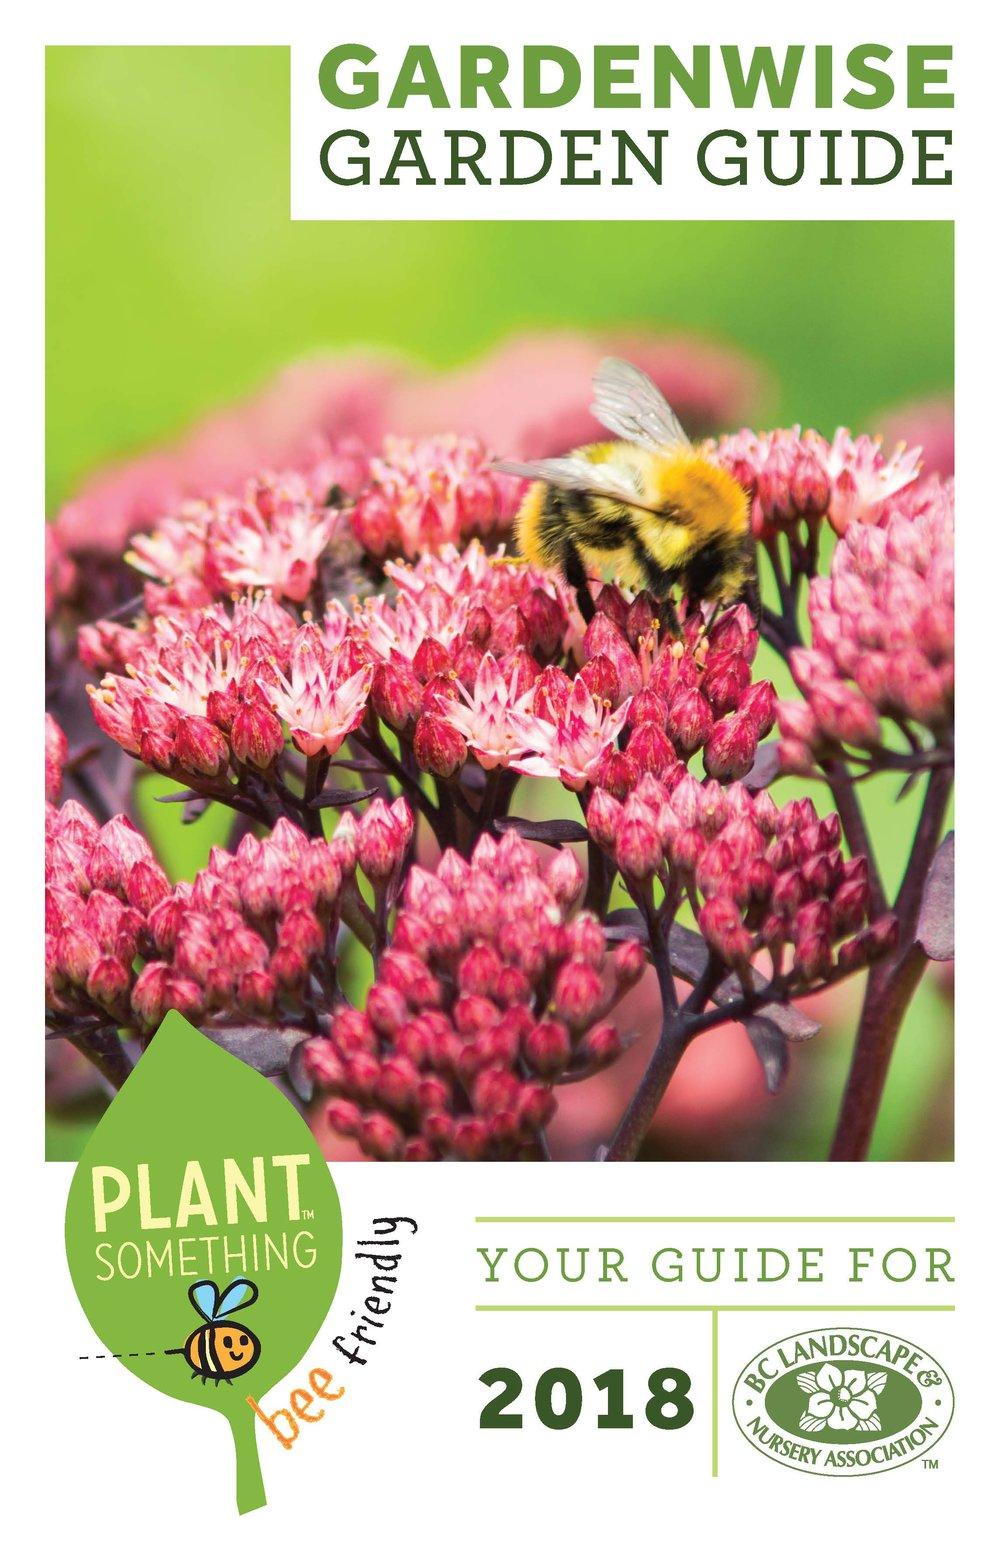 BCLNA_GardenWise_Booklet_FA_ReaderSpreads_Page_01.jpg